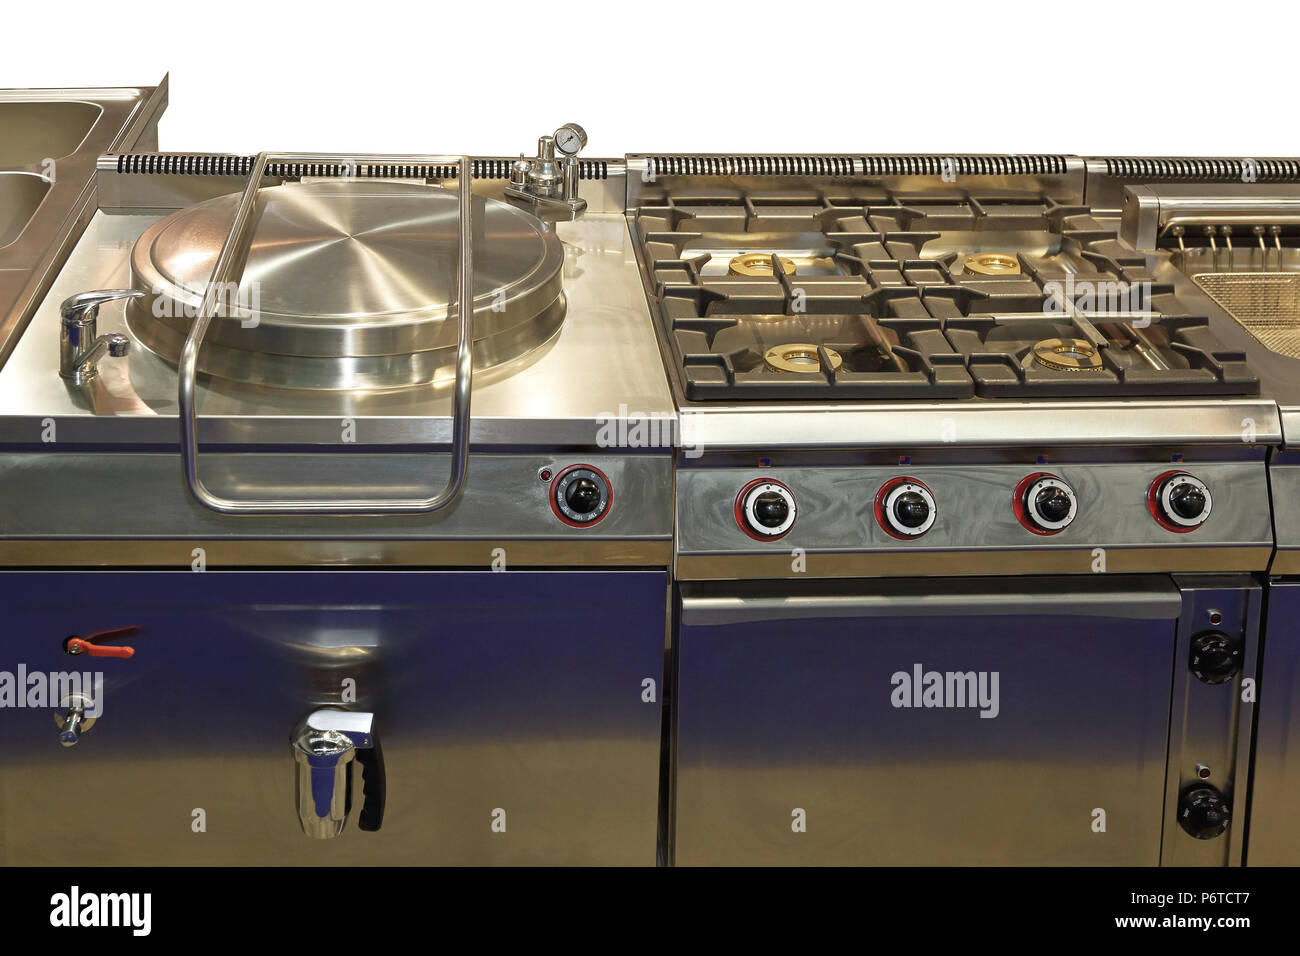 Commercial pressure cooker and big gas range in professional kitchen - Stock Image